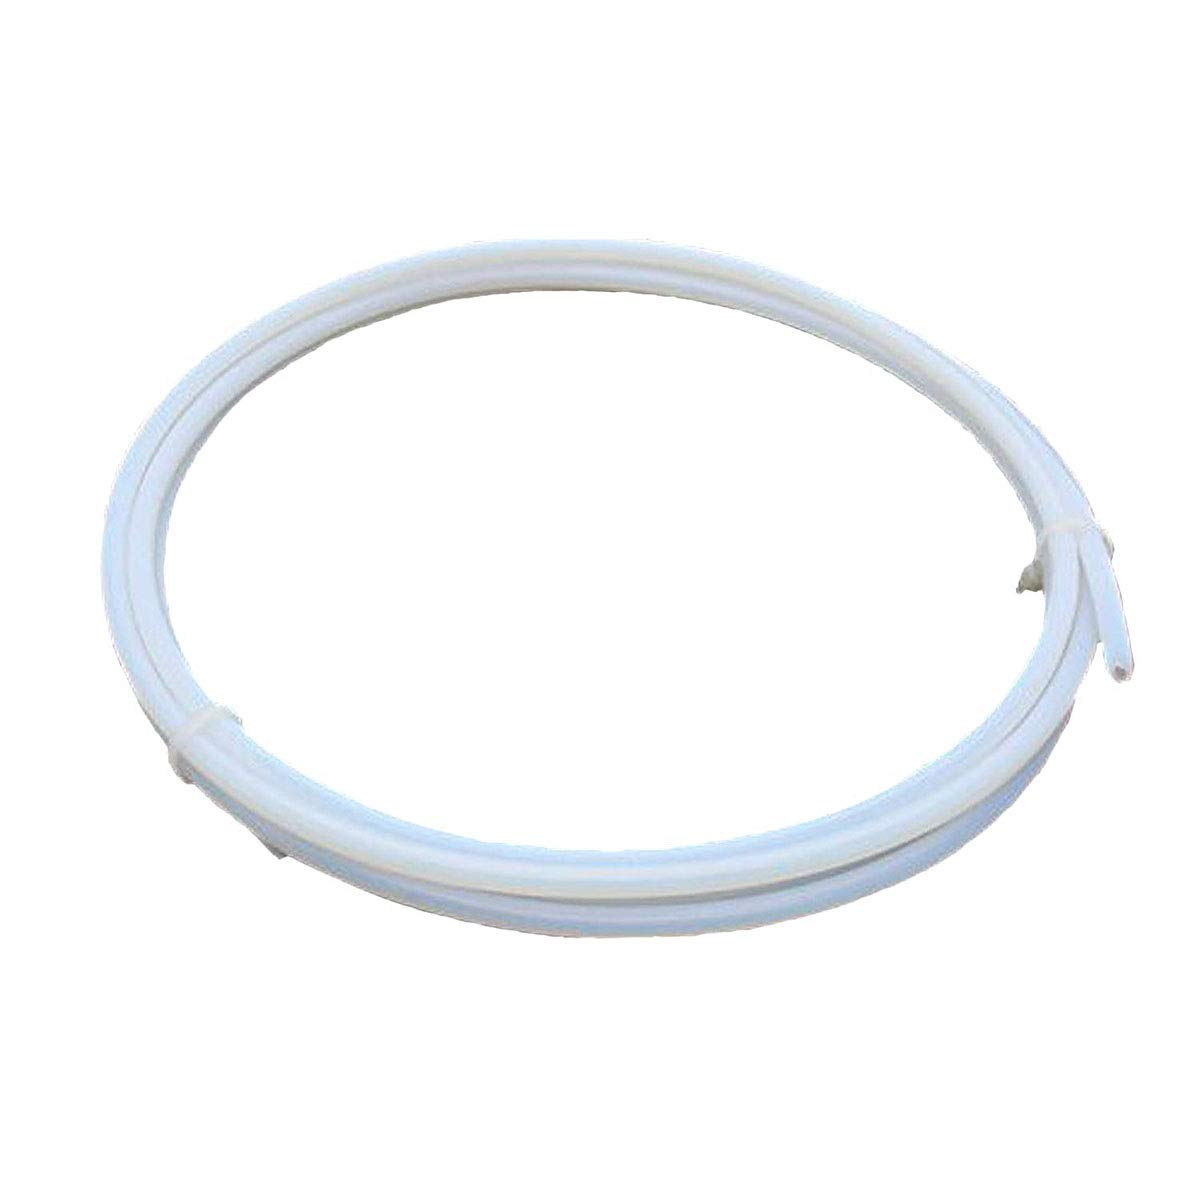 Samje 2m PTFE Teflon Bowden Tube (4.0mm OD/2.0mm ID)1.75mm Filament for 3D Printer Makerbot RepRap Rostock Kossel